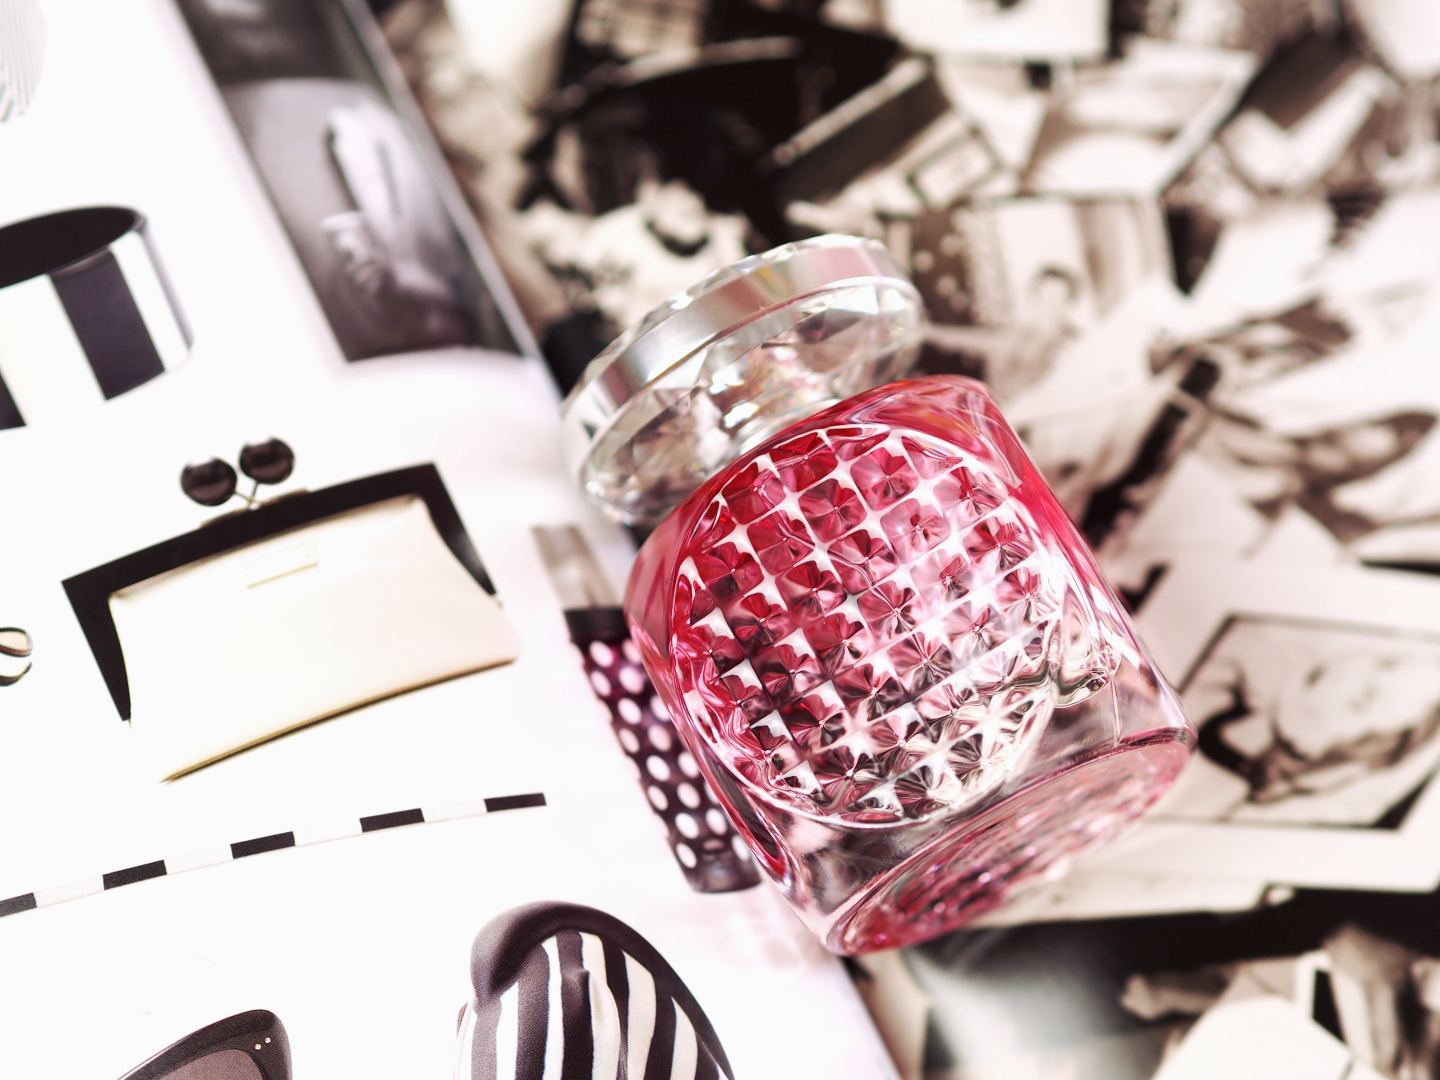 Jimmy Choo 'Blossom' perfume review